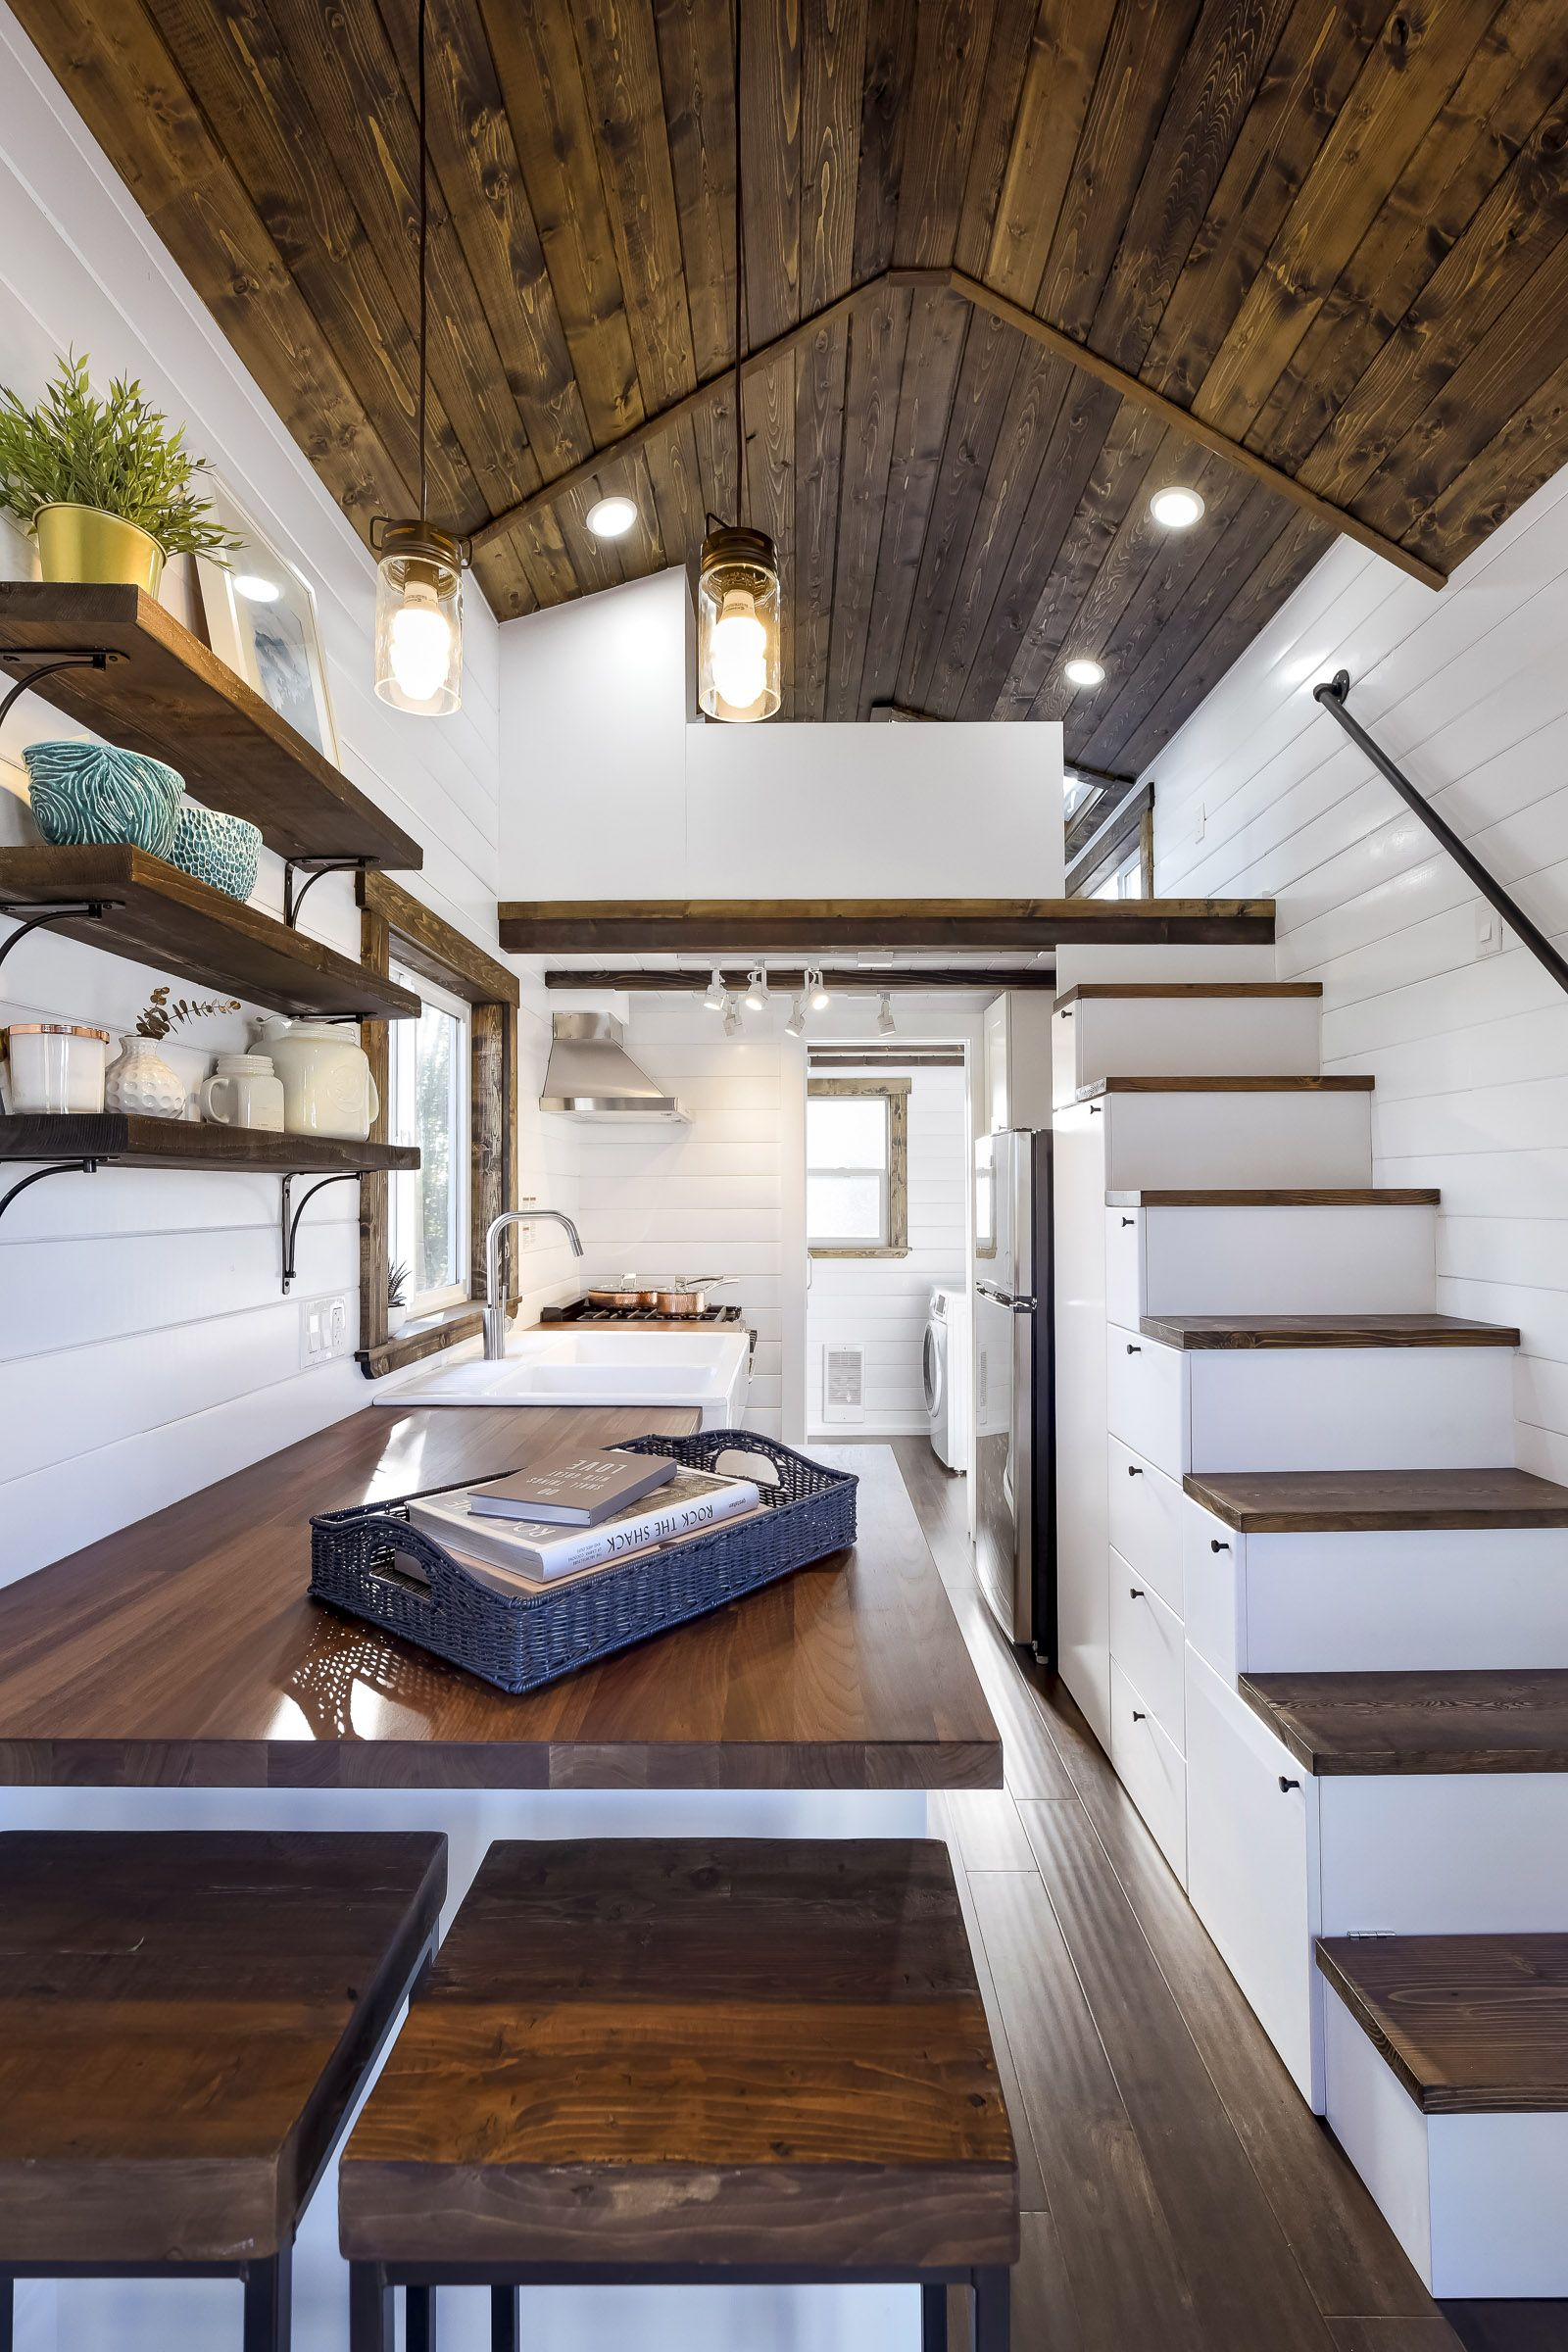 26ft Tiny Home With Split Pitch Roof And White Dark Brown Accents